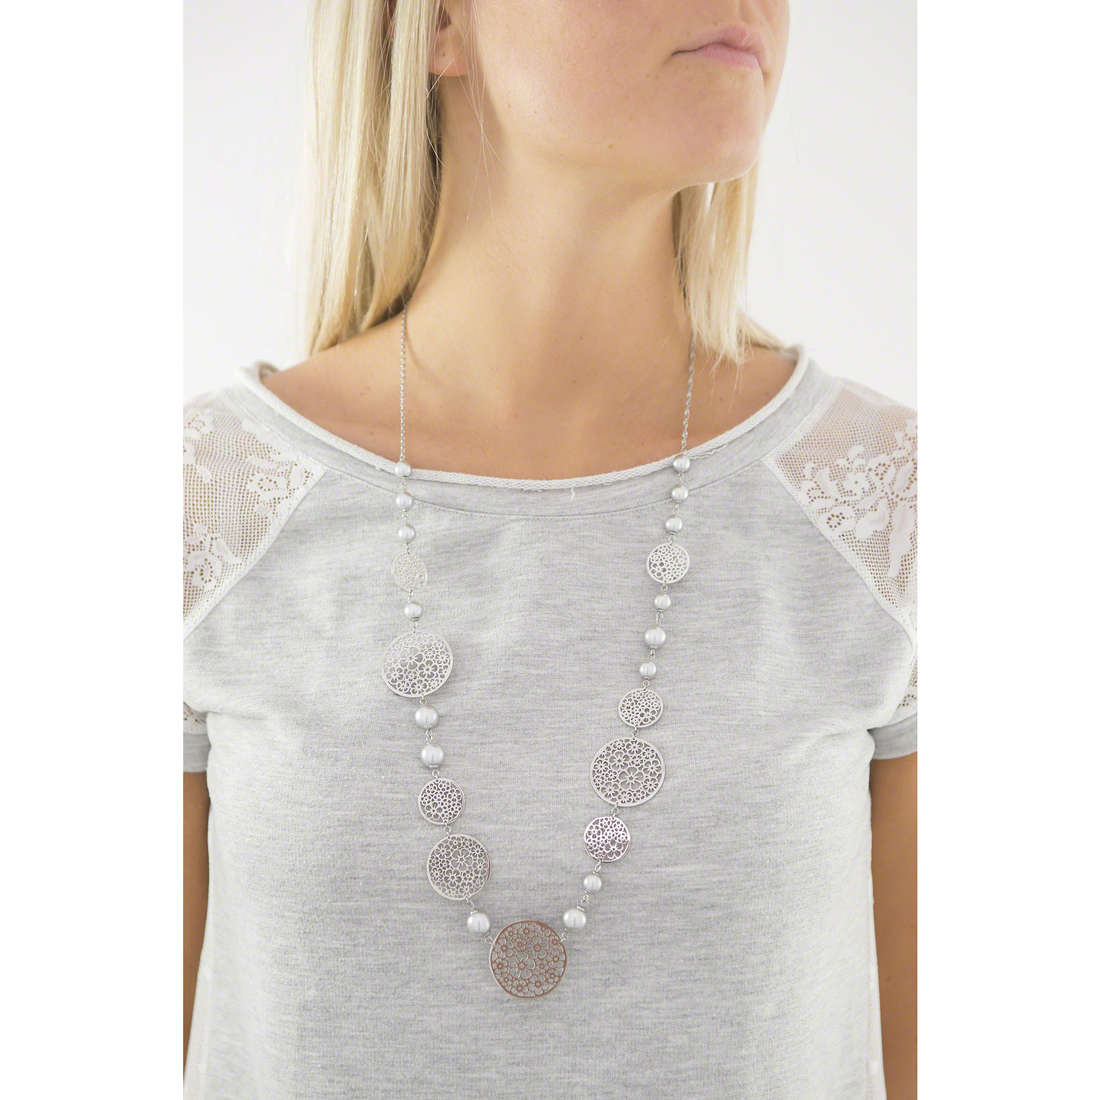 Brosway necklaces Mademoiselle woman BIS02 indosso